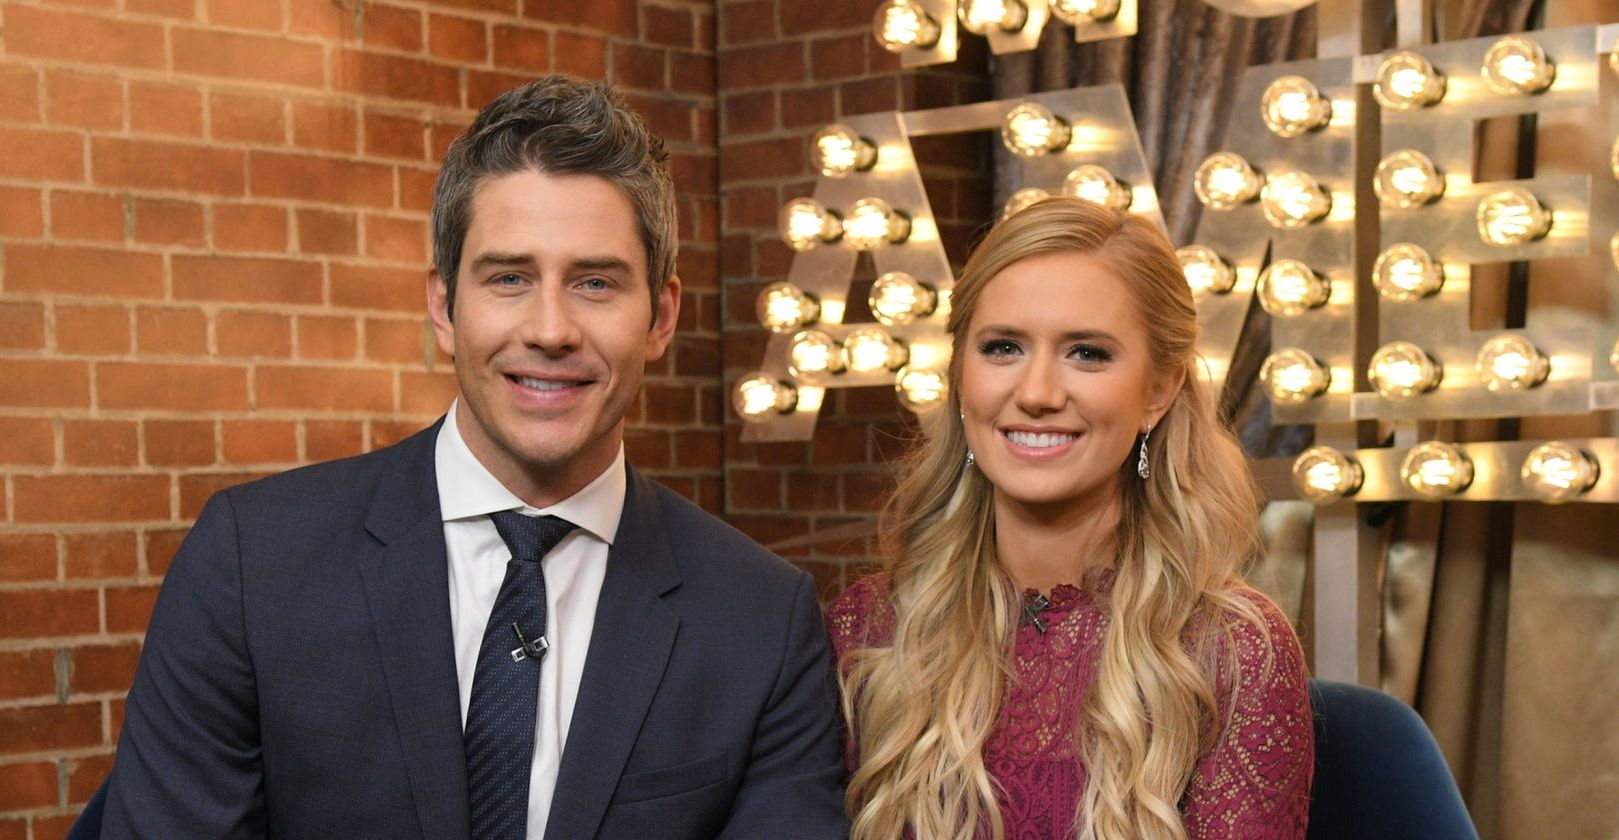 Arie Luyendyk and Lauren Burnham